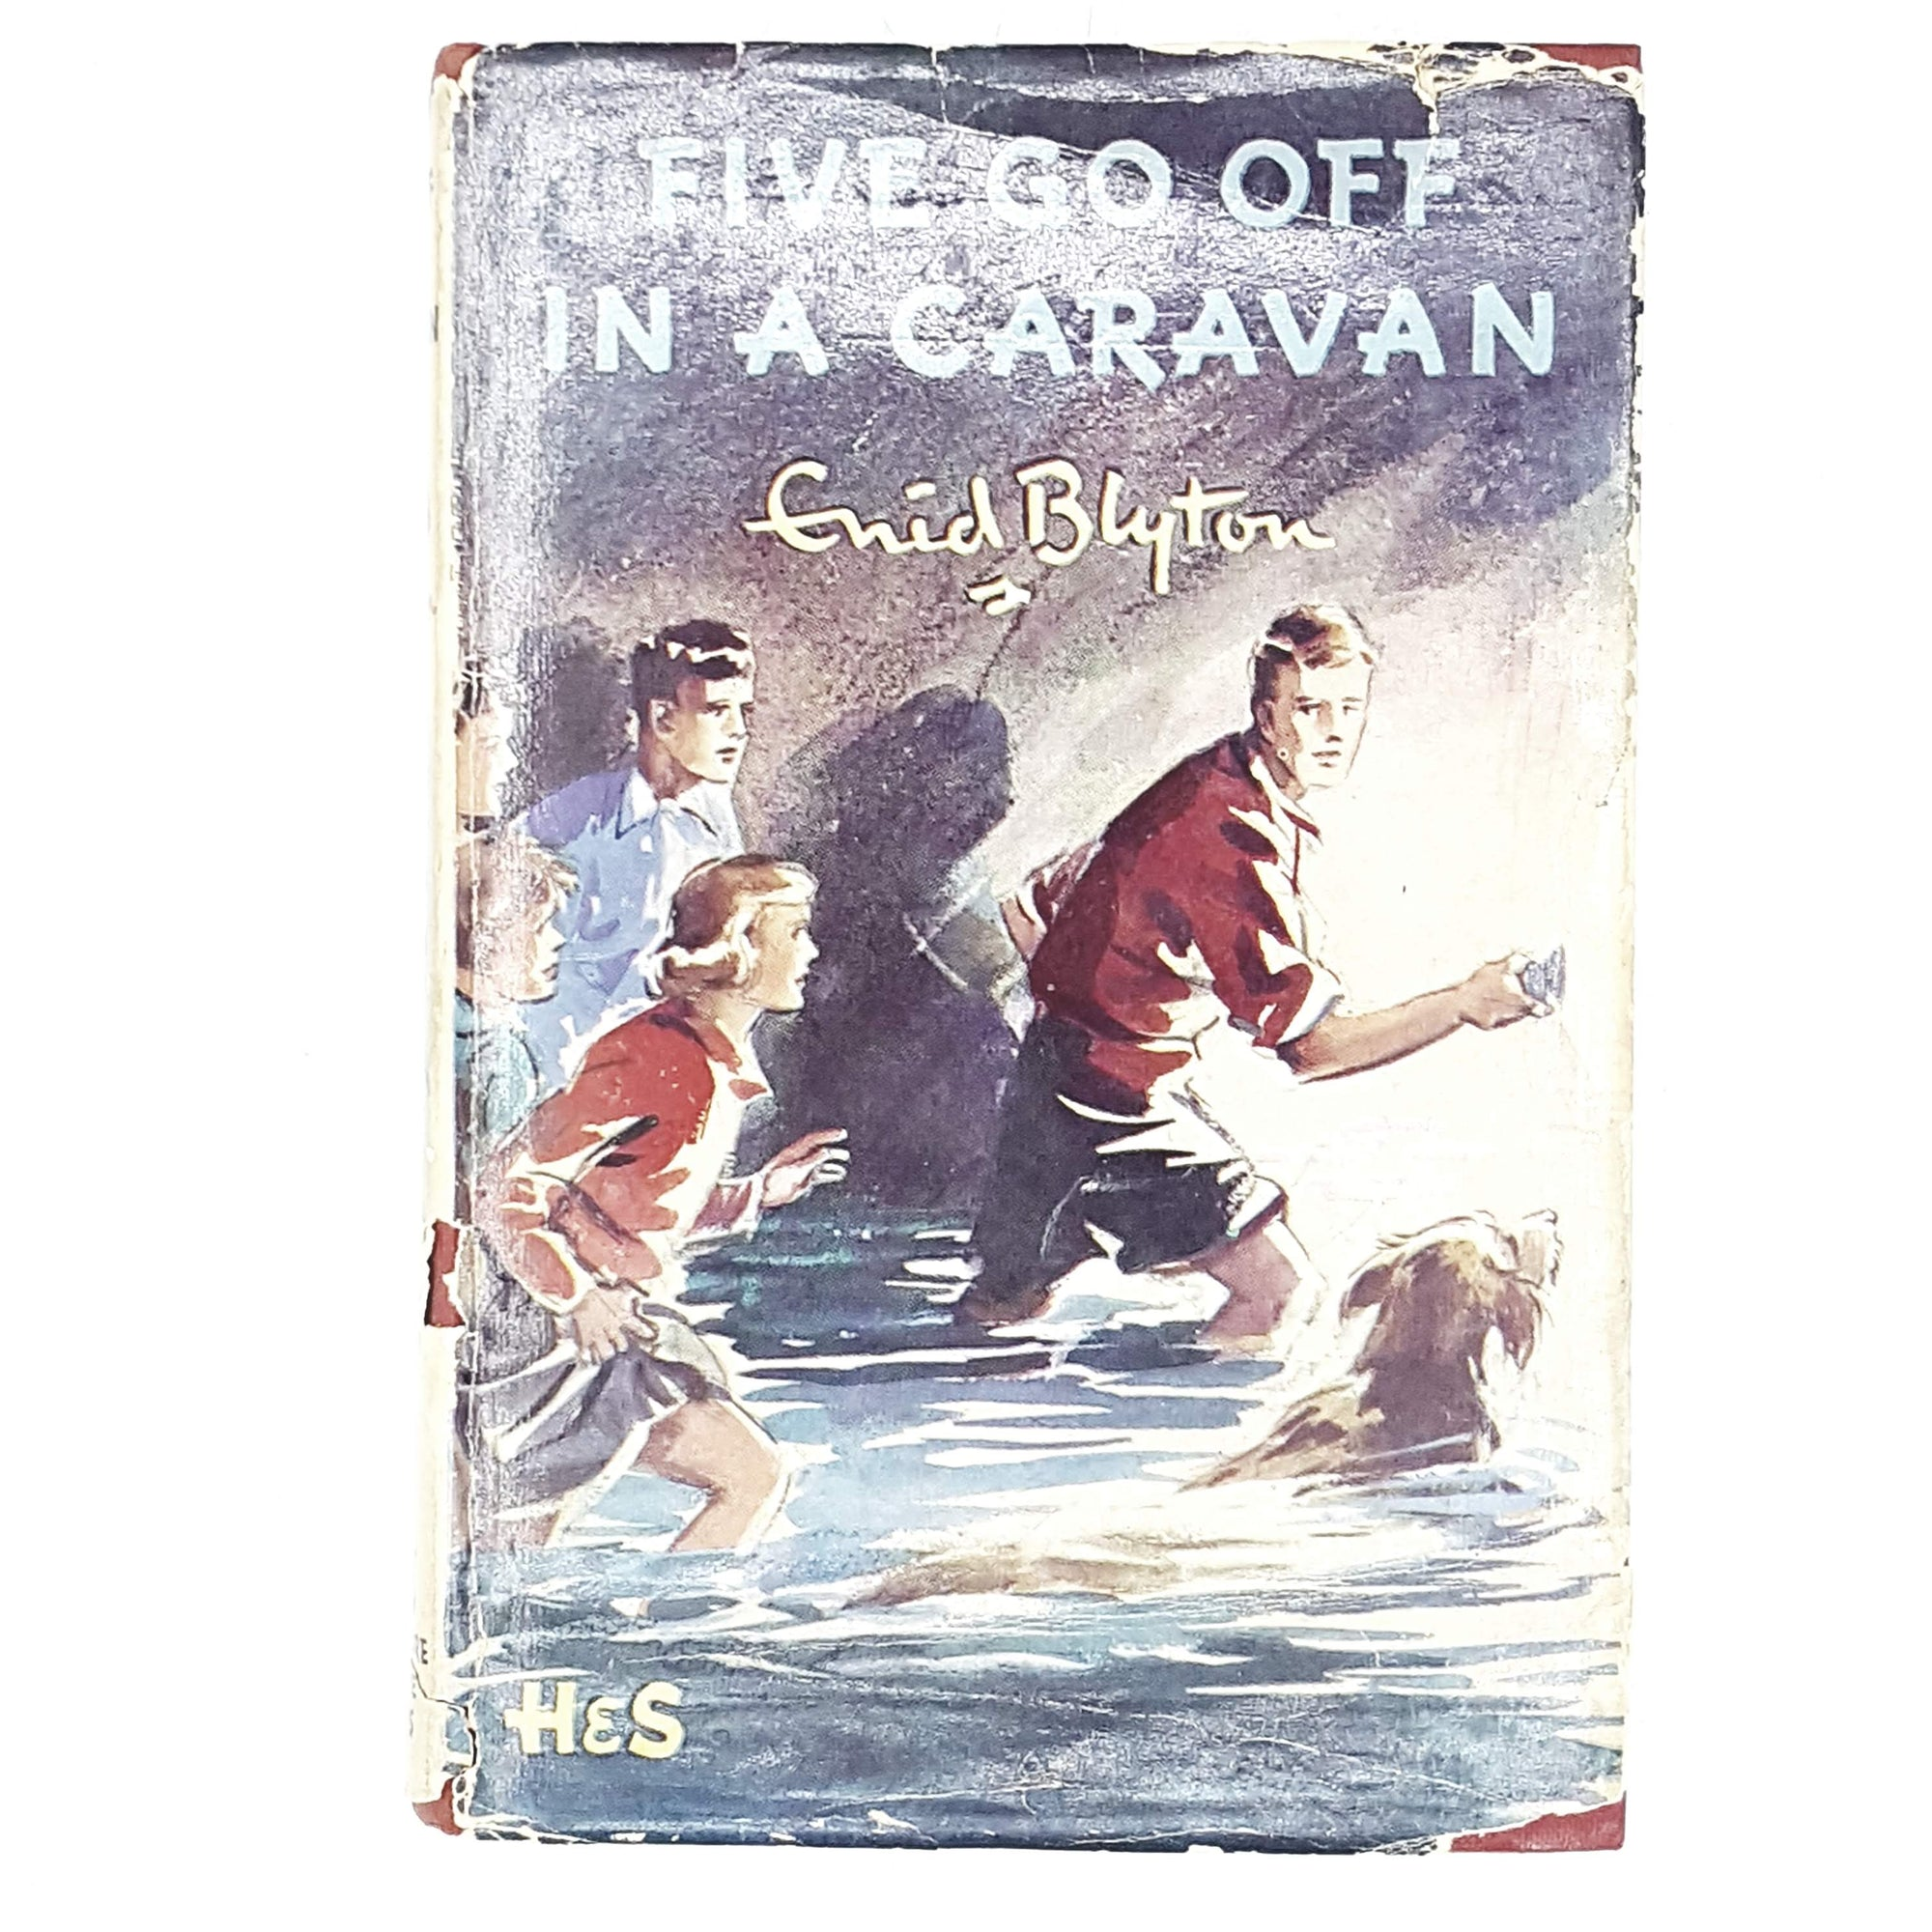 enid-blytons-five-go-off-in-a-caravan-1956-country-house-library